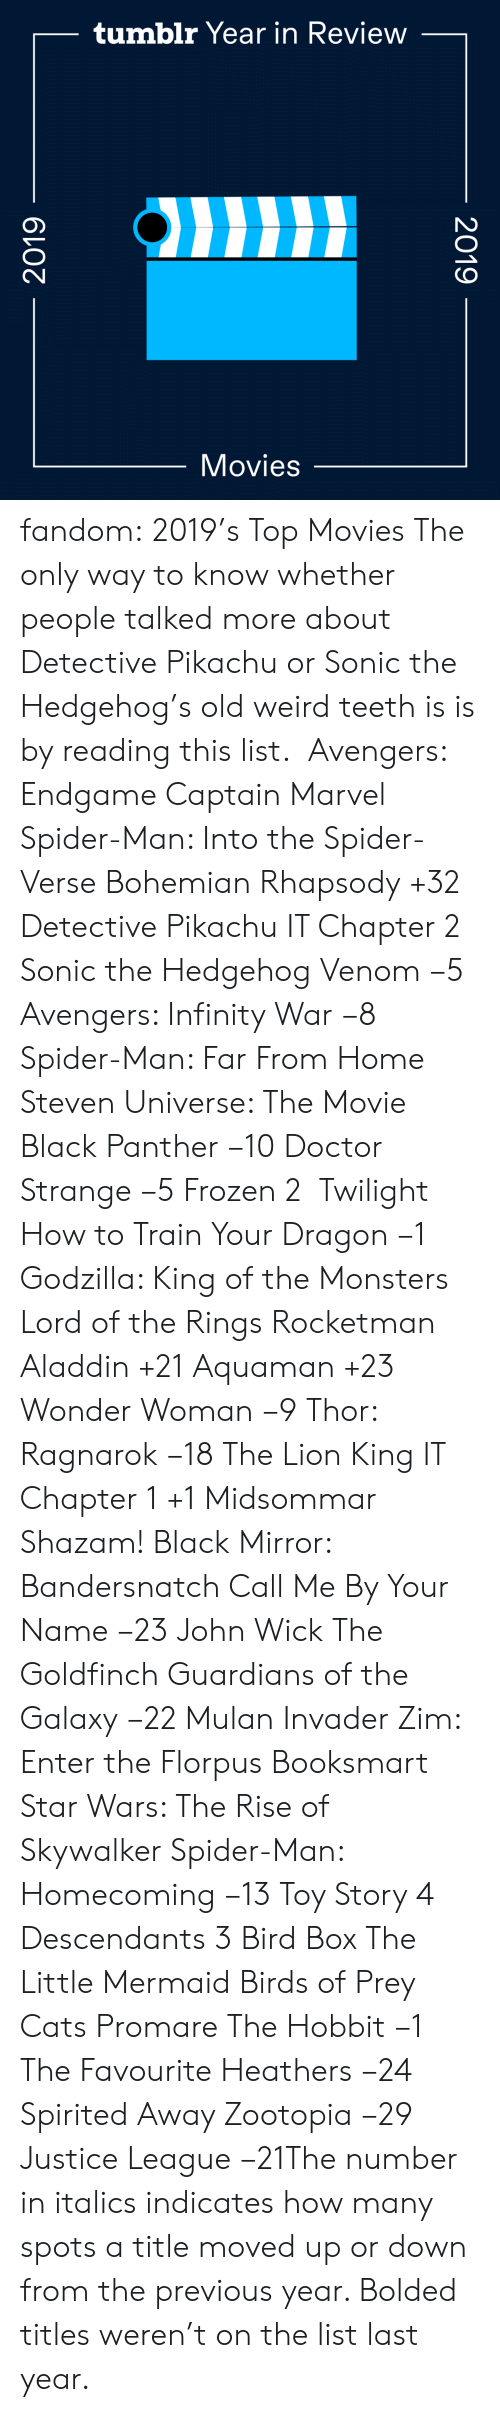 Steven Universe: tumblr Year in Review  Movies  2019  2019 fandom:  2019's Top Movies  The only way to know whether people talked more about Detective Pikachu or Sonic the Hedgehog's old weird teeth is is by reading this list.   Avengers: Endgame  Captain Marvel  Spider-Man: Into the Spider-Verse  Bohemian Rhapsody +32  Detective Pikachu  IT Chapter 2  Sonic the Hedgehog  Venom −5  Avengers: Infinity War −8  Spider-Man: Far From Home  Steven Universe: The Movie  Black Panther −10  Doctor Strange −5  Frozen 2   Twilight  How to Train Your Dragon −1  Godzilla: King of the Monsters  Lord of the Rings  Rocketman  Aladdin +21  Aquaman +23  Wonder Woman −9  Thor: Ragnarok −18  The Lion King  IT Chapter 1 +1  Midsommar  Shazam!  Black Mirror: Bandersnatch  Call Me By Your Name −23  John Wick  The Goldfinch  Guardians of the Galaxy −22  Mulan  Invader Zim: Enter the Florpus  Booksmart  Star Wars: The Rise of Skywalker  Spider-Man: Homecoming −13  Toy Story 4  Descendants 3  Bird Box  The Little Mermaid  Birds of Prey  Cats  Promare  The Hobbit −1  The Favourite  Heathers −24  Spirited Away  Zootopia −29 Justice League −21The number in italics indicates how many spots a title moved up or down from the previous year. Bolded titles weren't on the list last year.